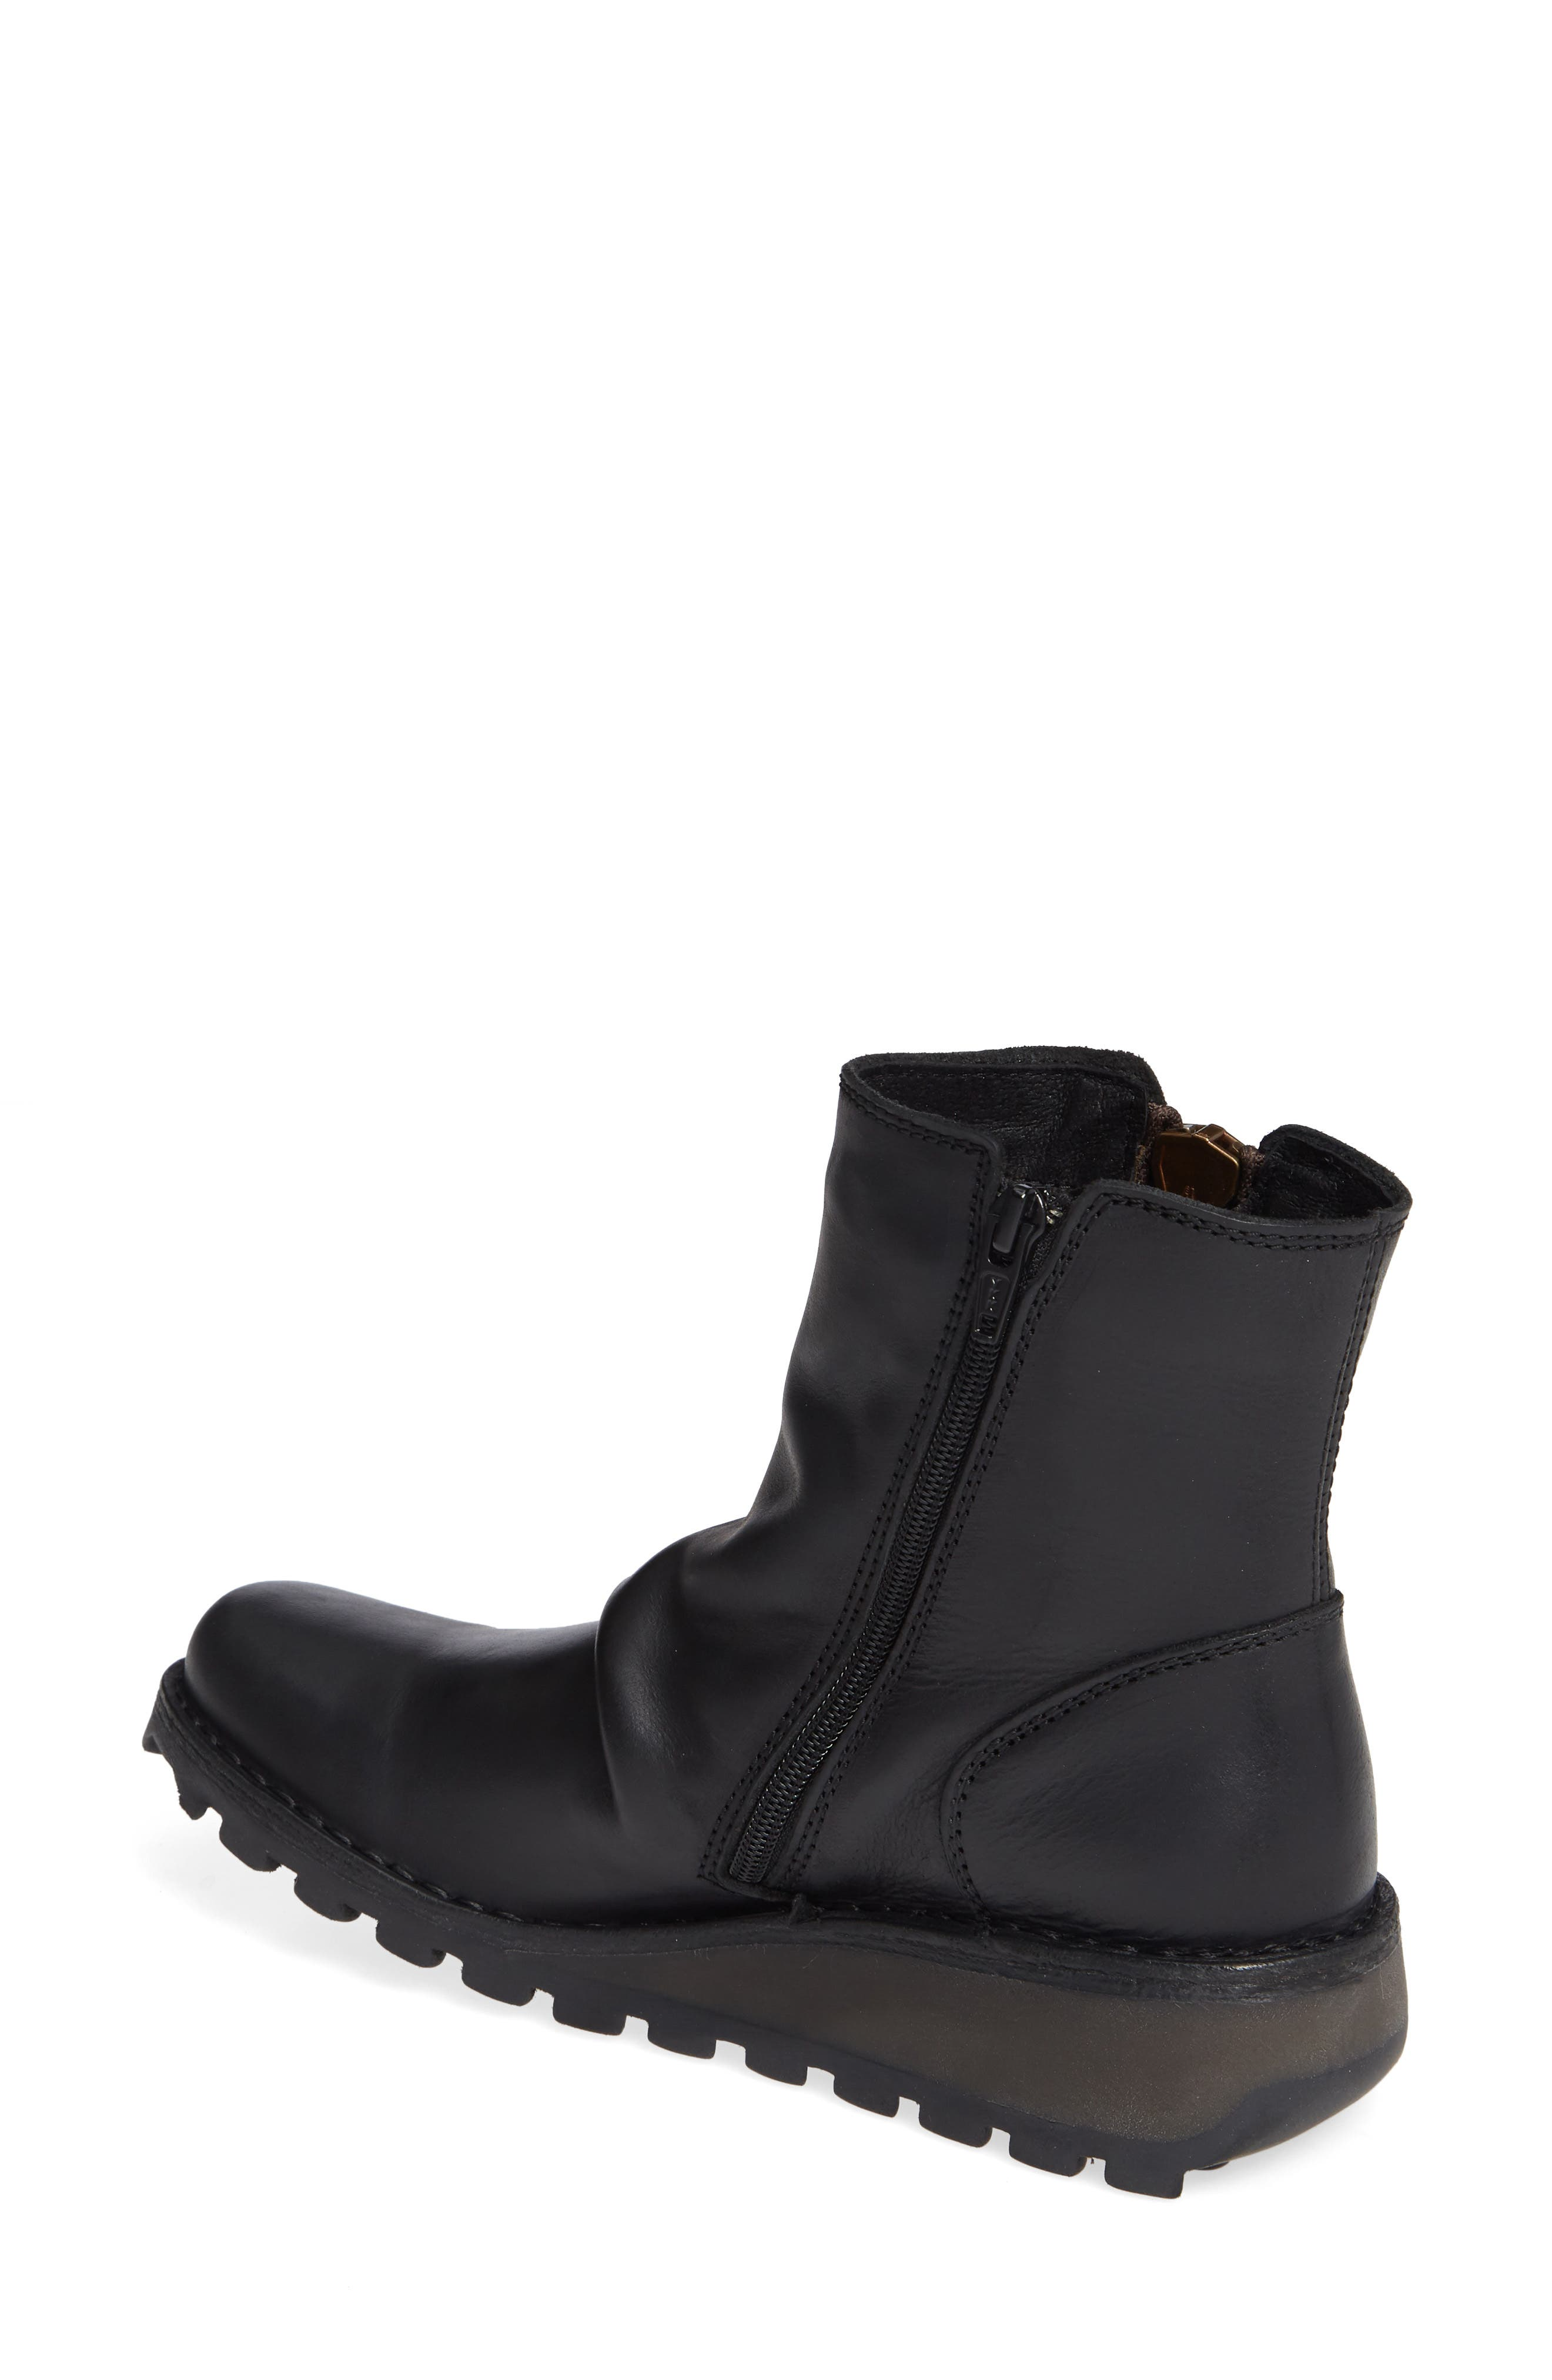 FLY LONDON, Mong Boot, Alternate thumbnail 2, color, BLACK LEATHER